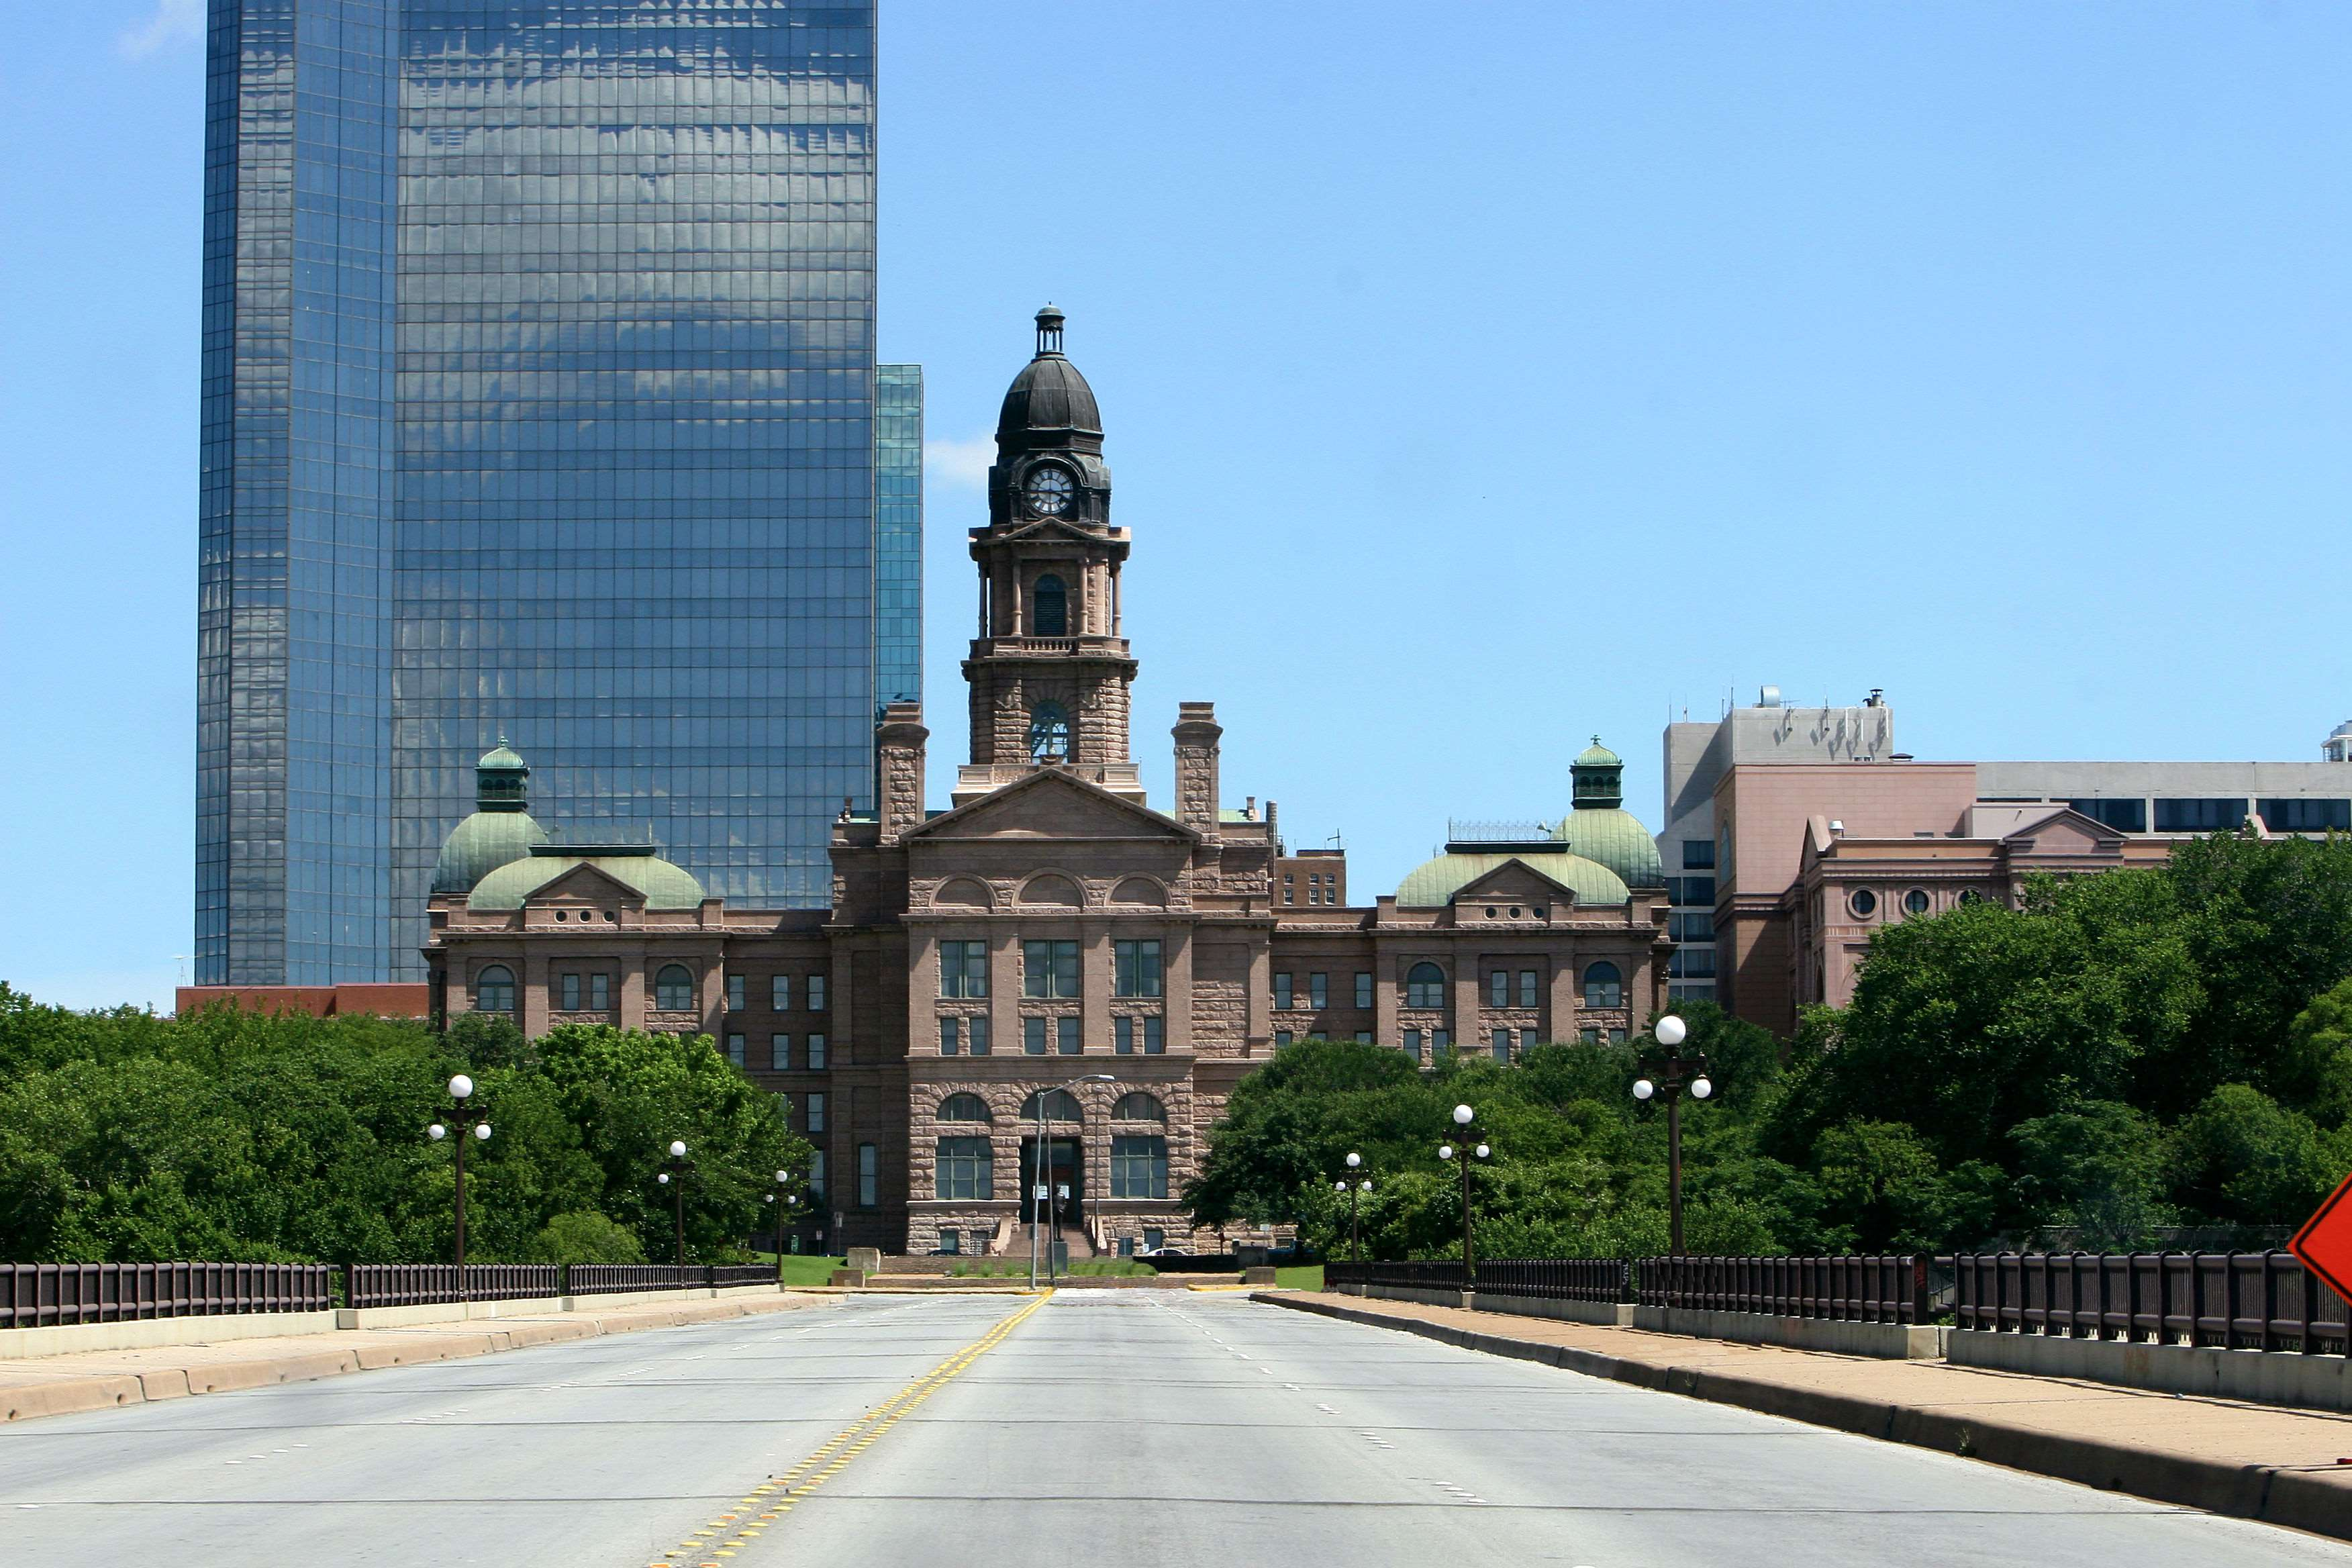 Fort Worth's courthouse